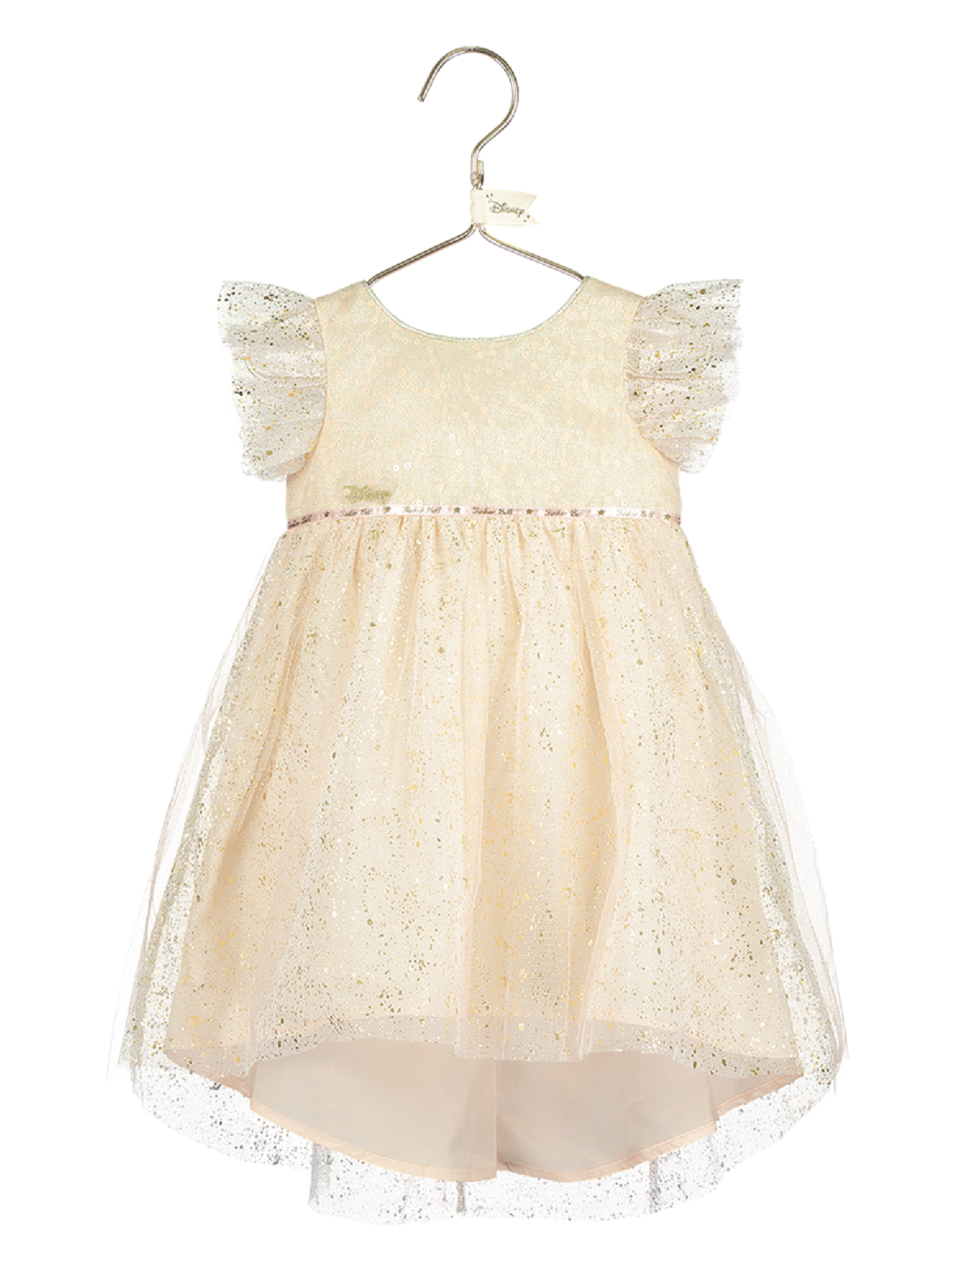 9326a5e9df550 Baby Disney Boutique Tinkerbell Occasion Dress - Fancy Me Limited